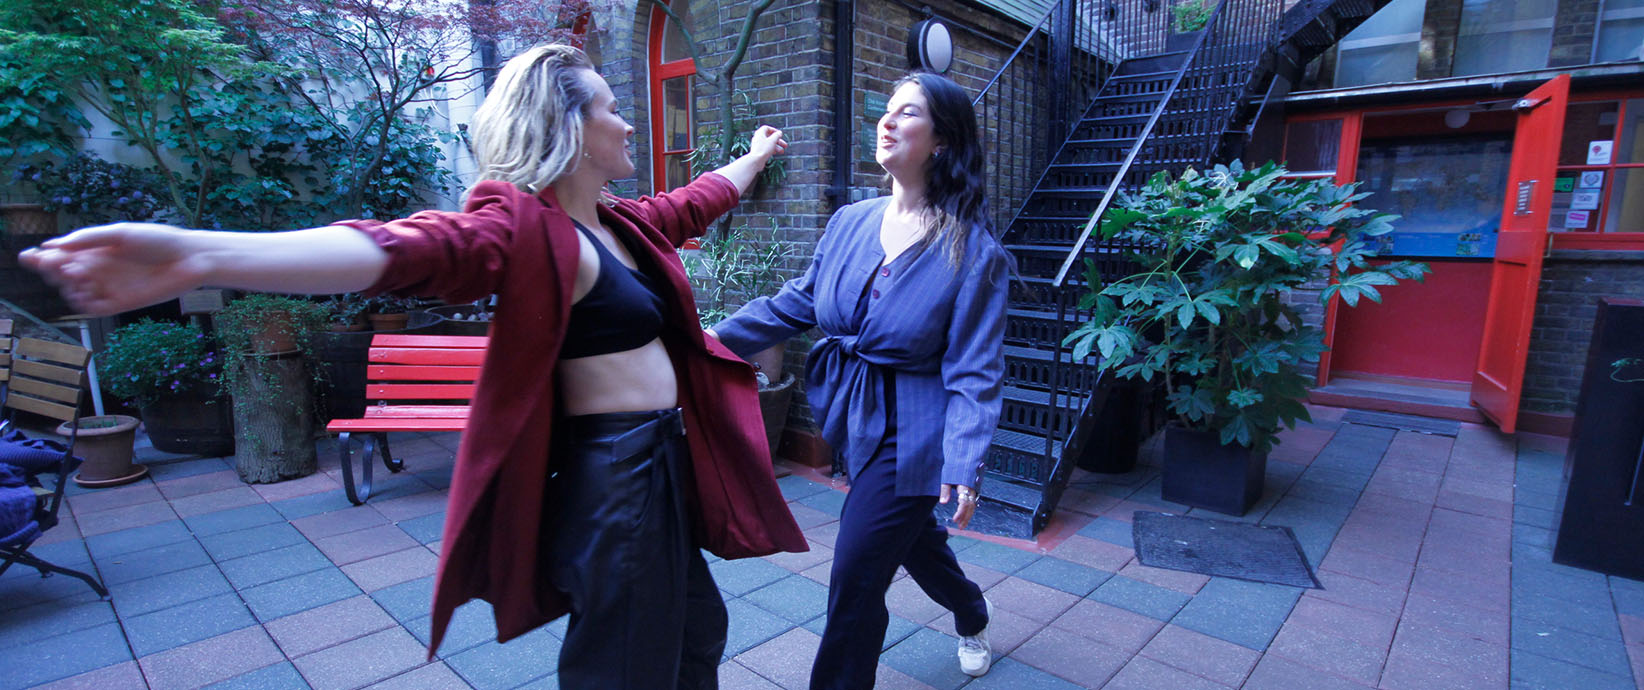 Maddie Mellon is a London based artist and movement practitioner